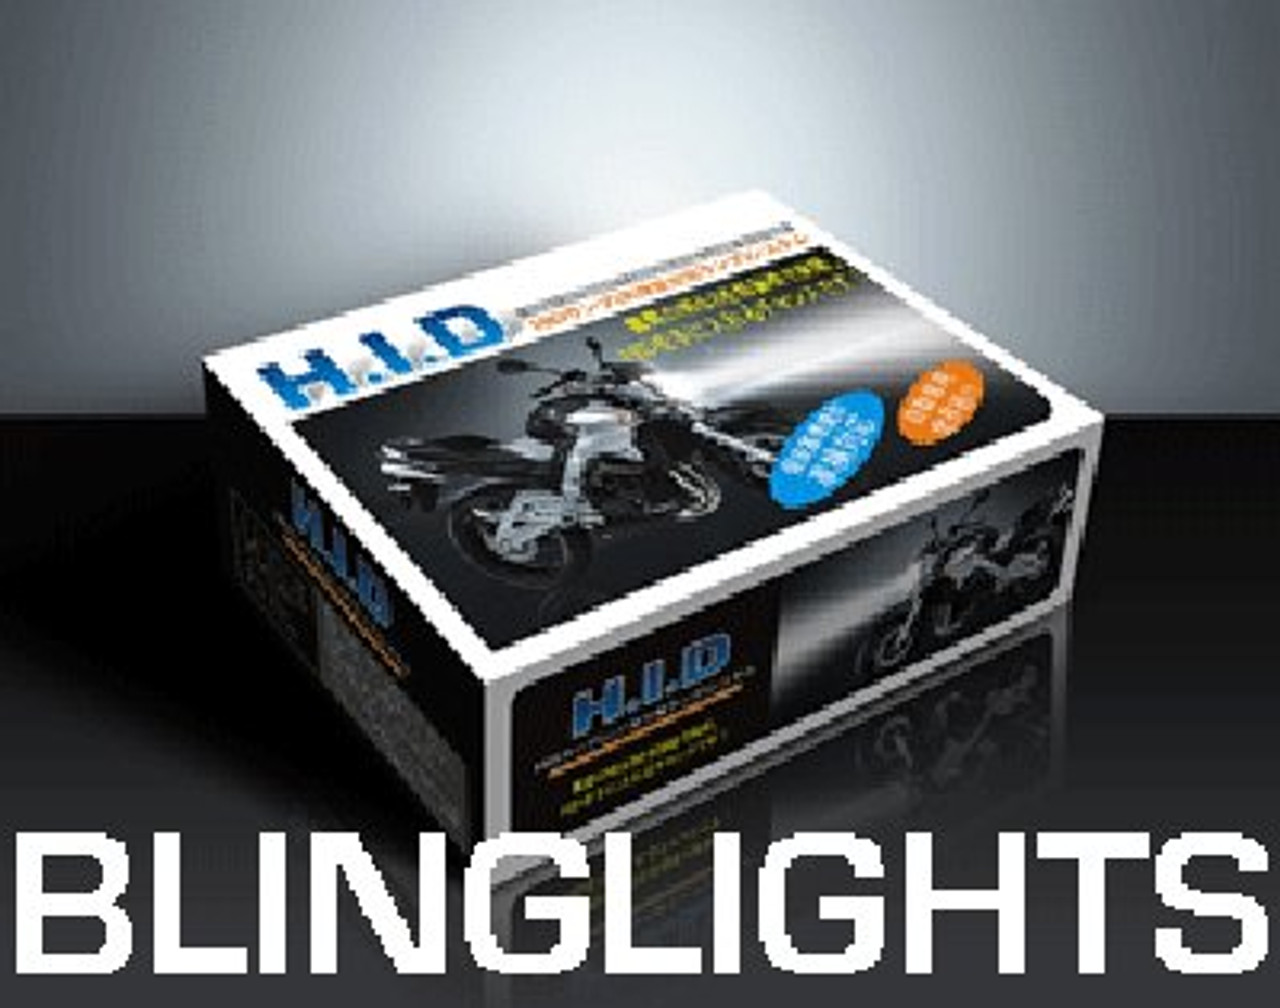 1993-2008 HARLEY-DAVIDSON SOFTTAIL STANDARD HID HEAD LIGHT LAMP 1994 1995 1996 1997 1998 1999 2000